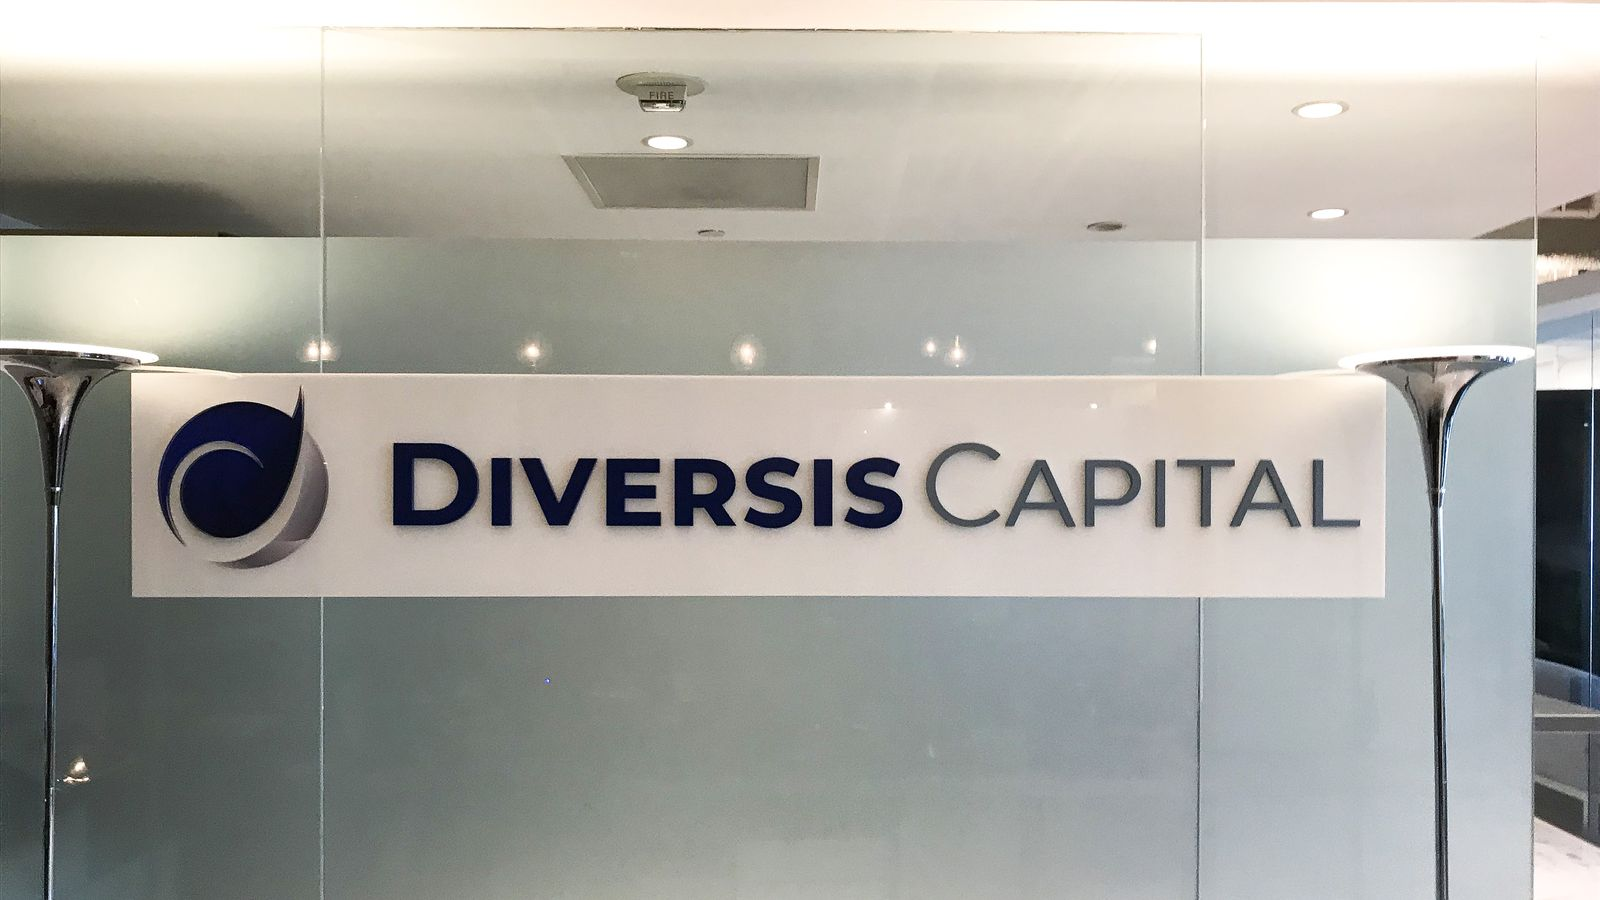 Diversis Captial 3d office sign displaying the company name and logo made of acrylic for interior branding